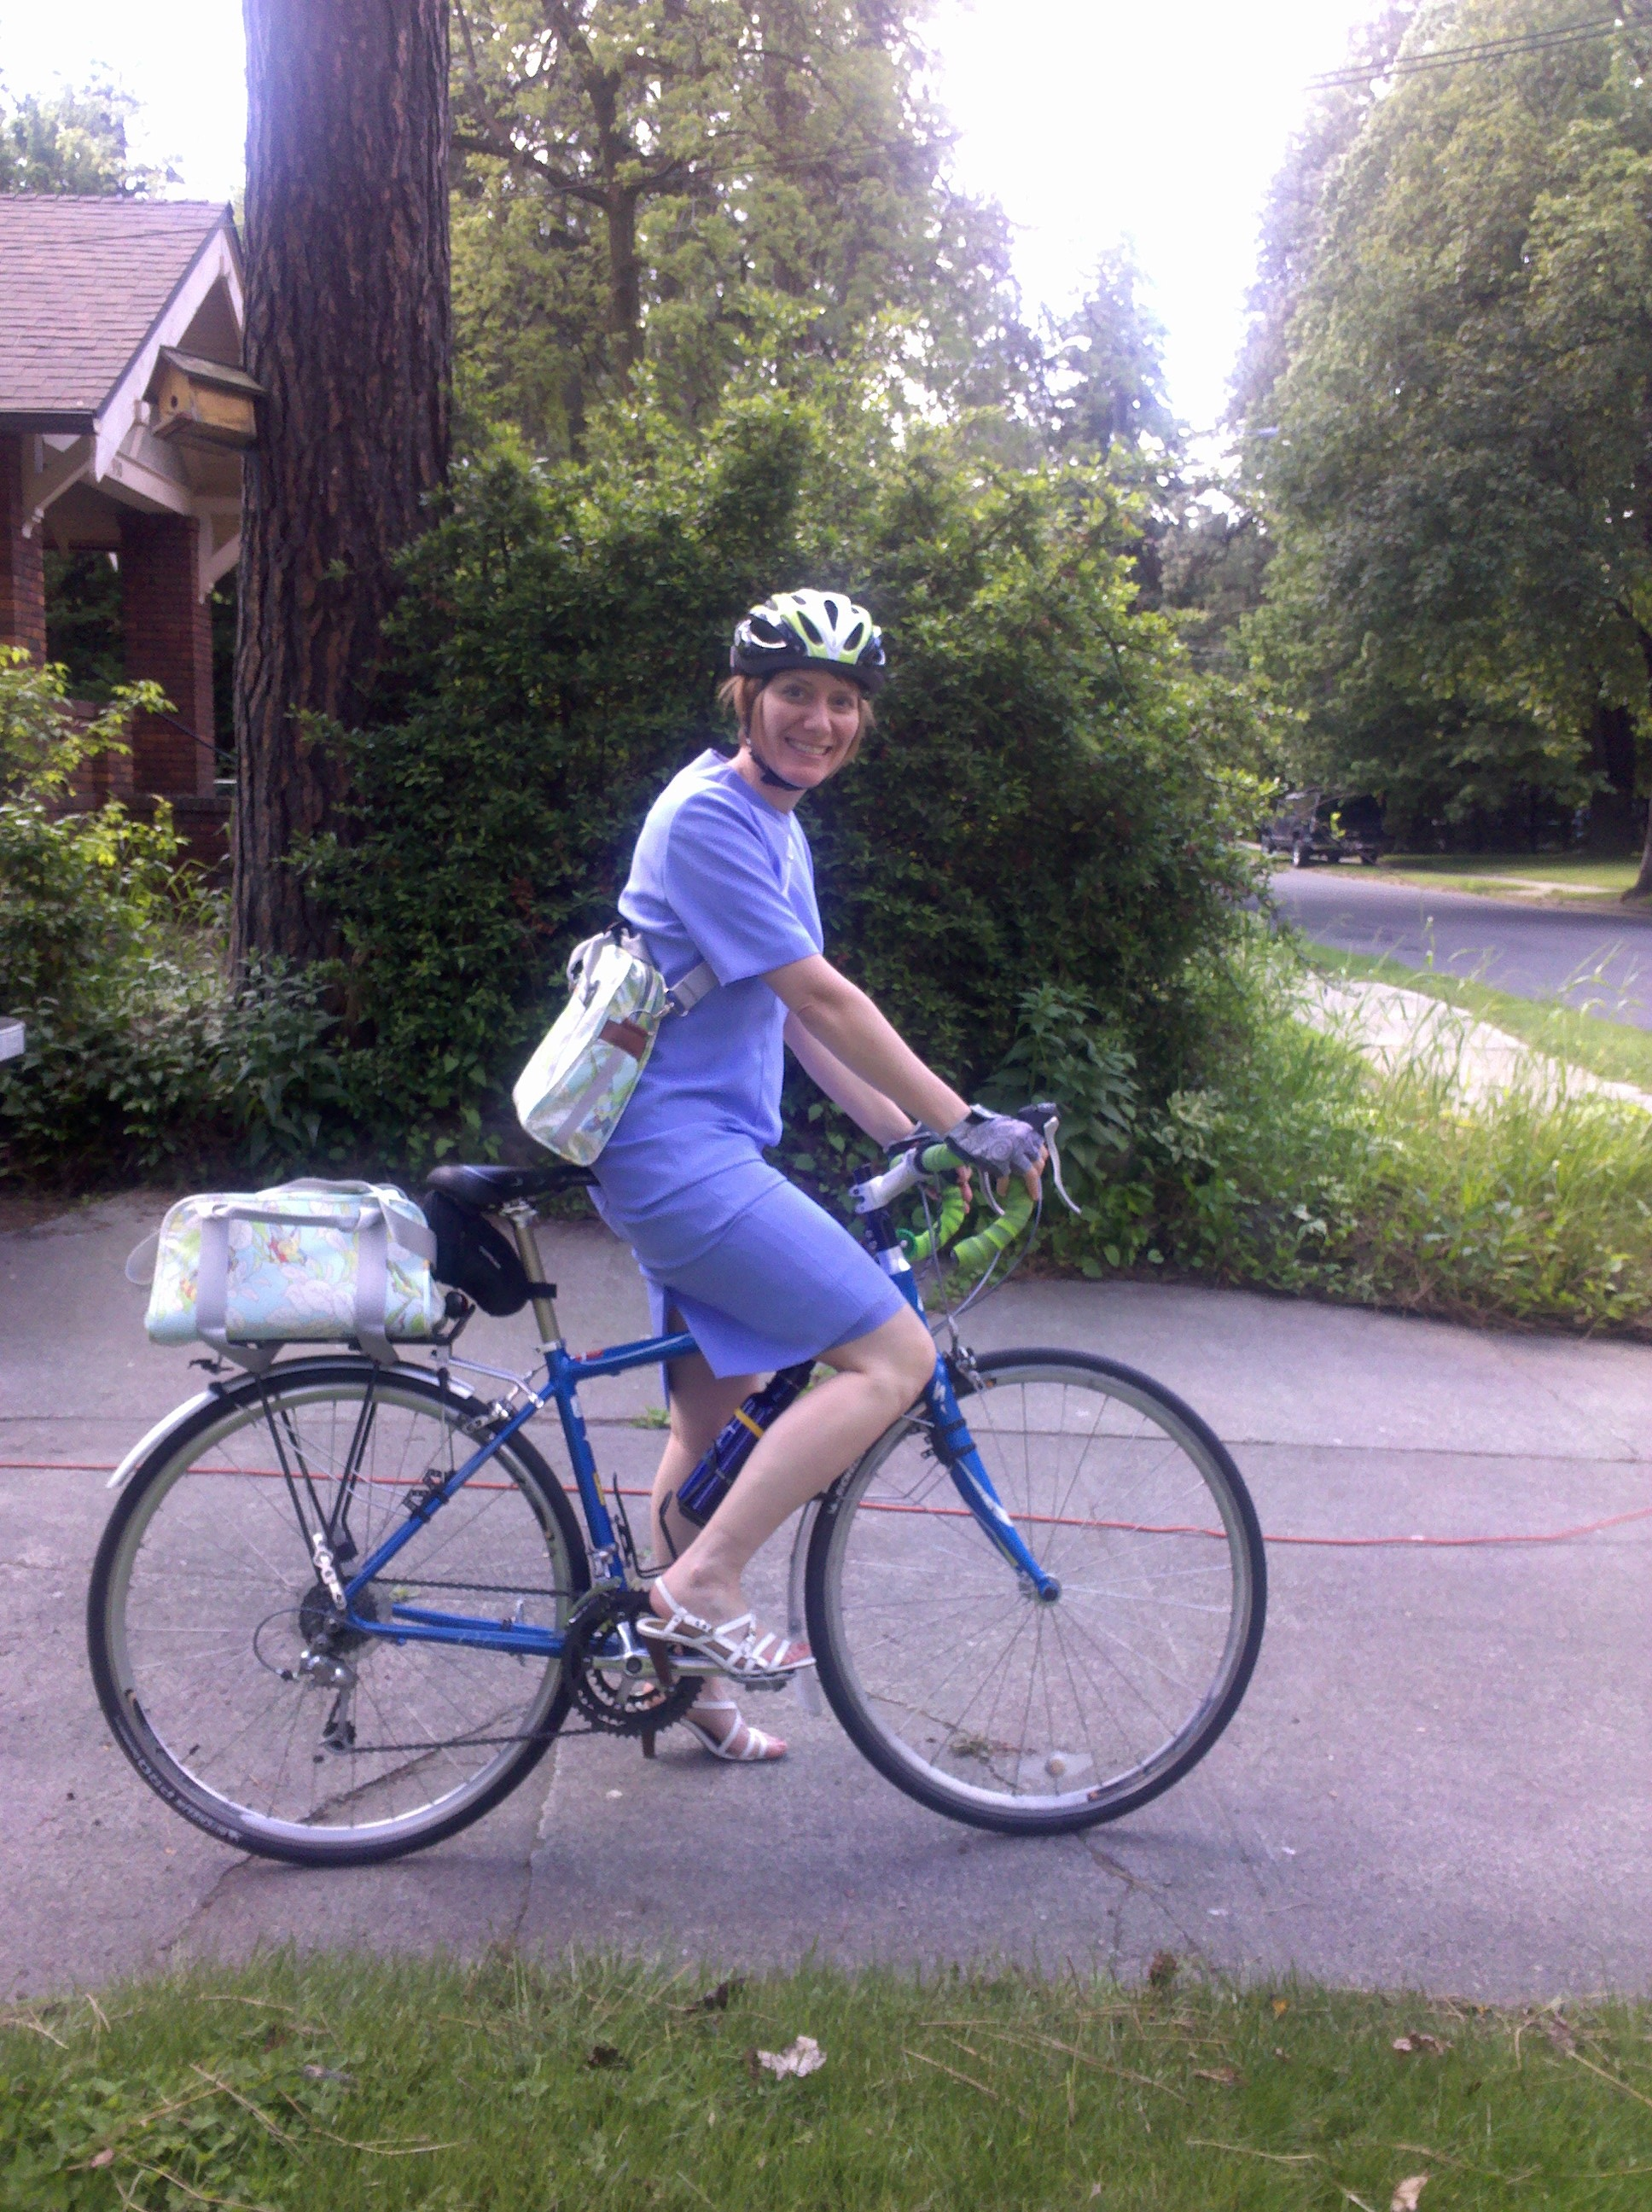 Dressed for the commute: Periwinkle blue dress, bike, Po Campo bags.